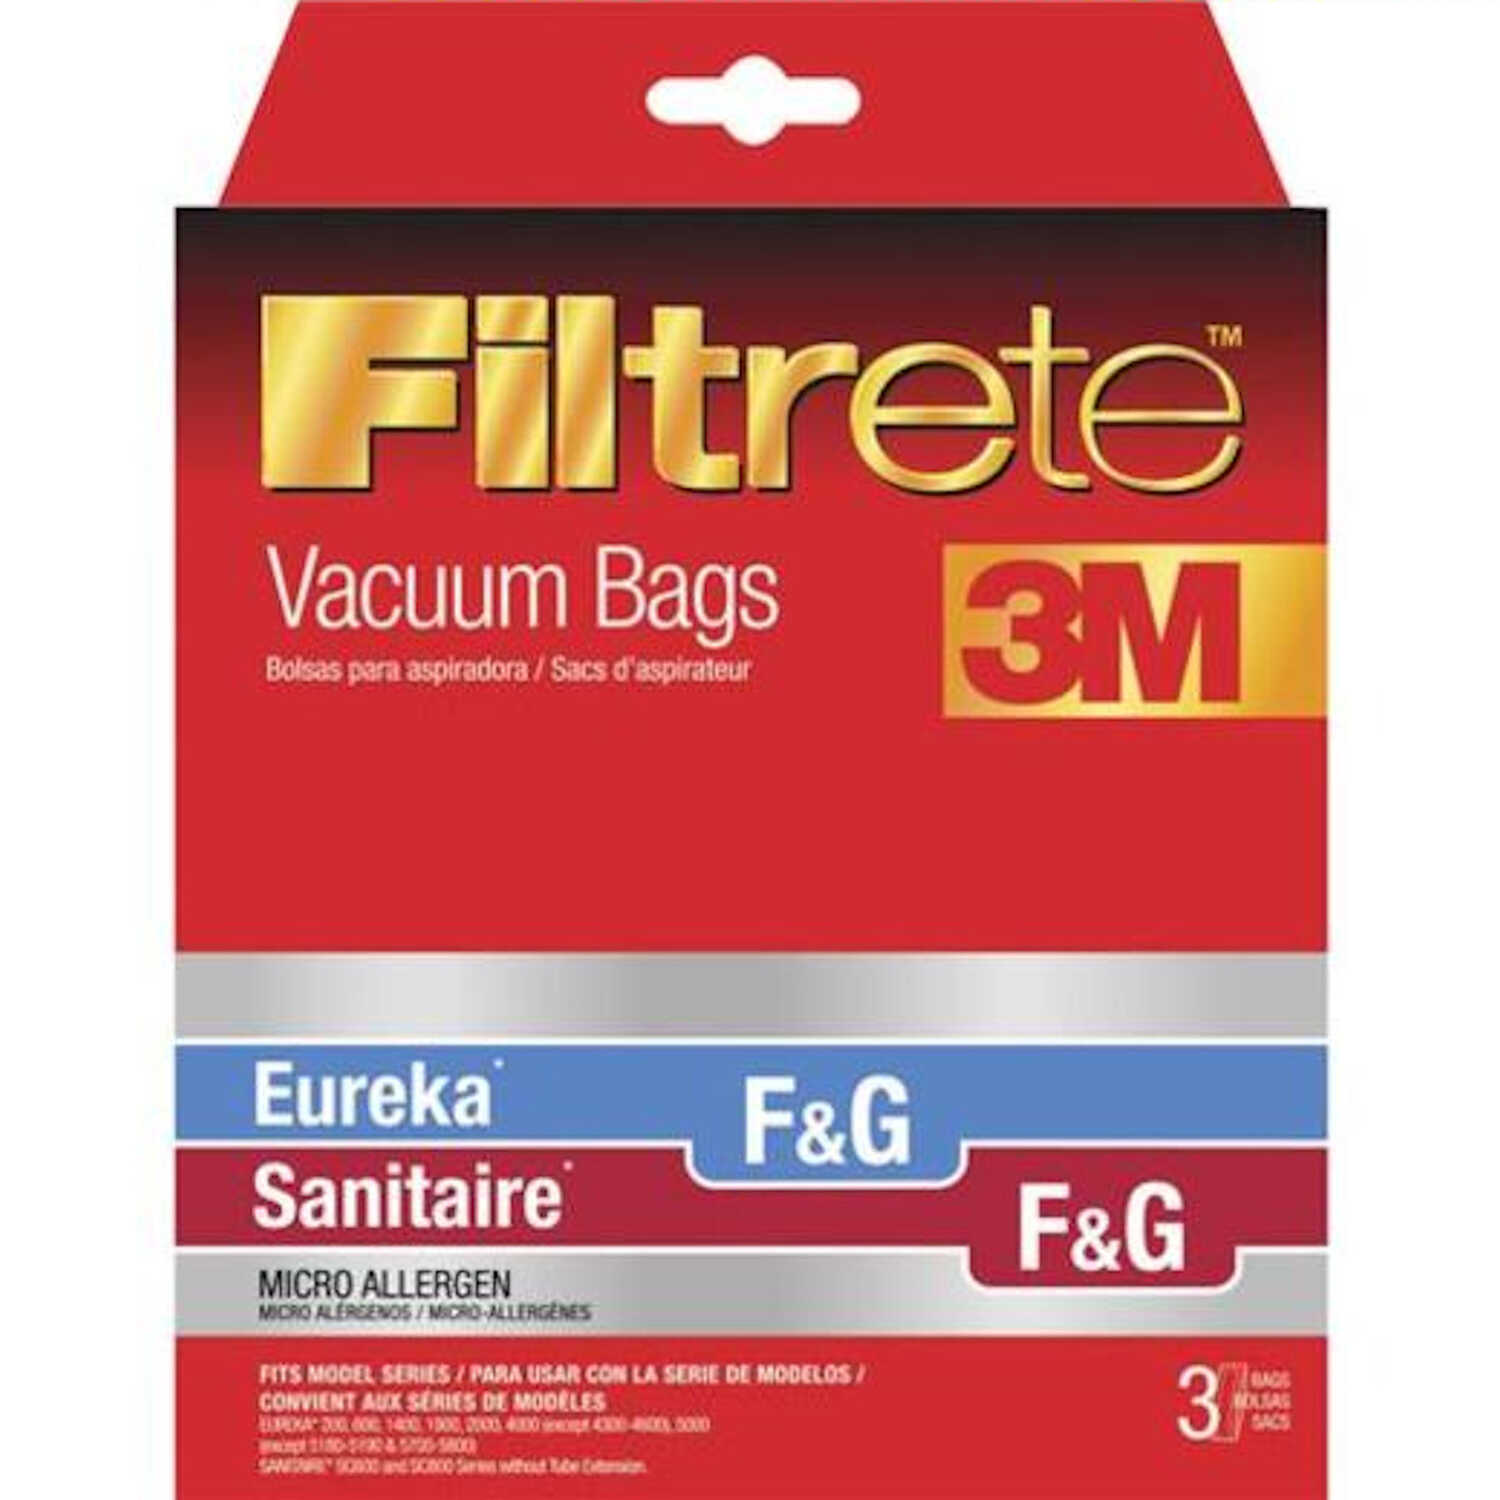 3M  Filtrete  Vacuum Bag  For Sanitaire/Eureka/Koblenz F and G, Micro Allergen 3 pk